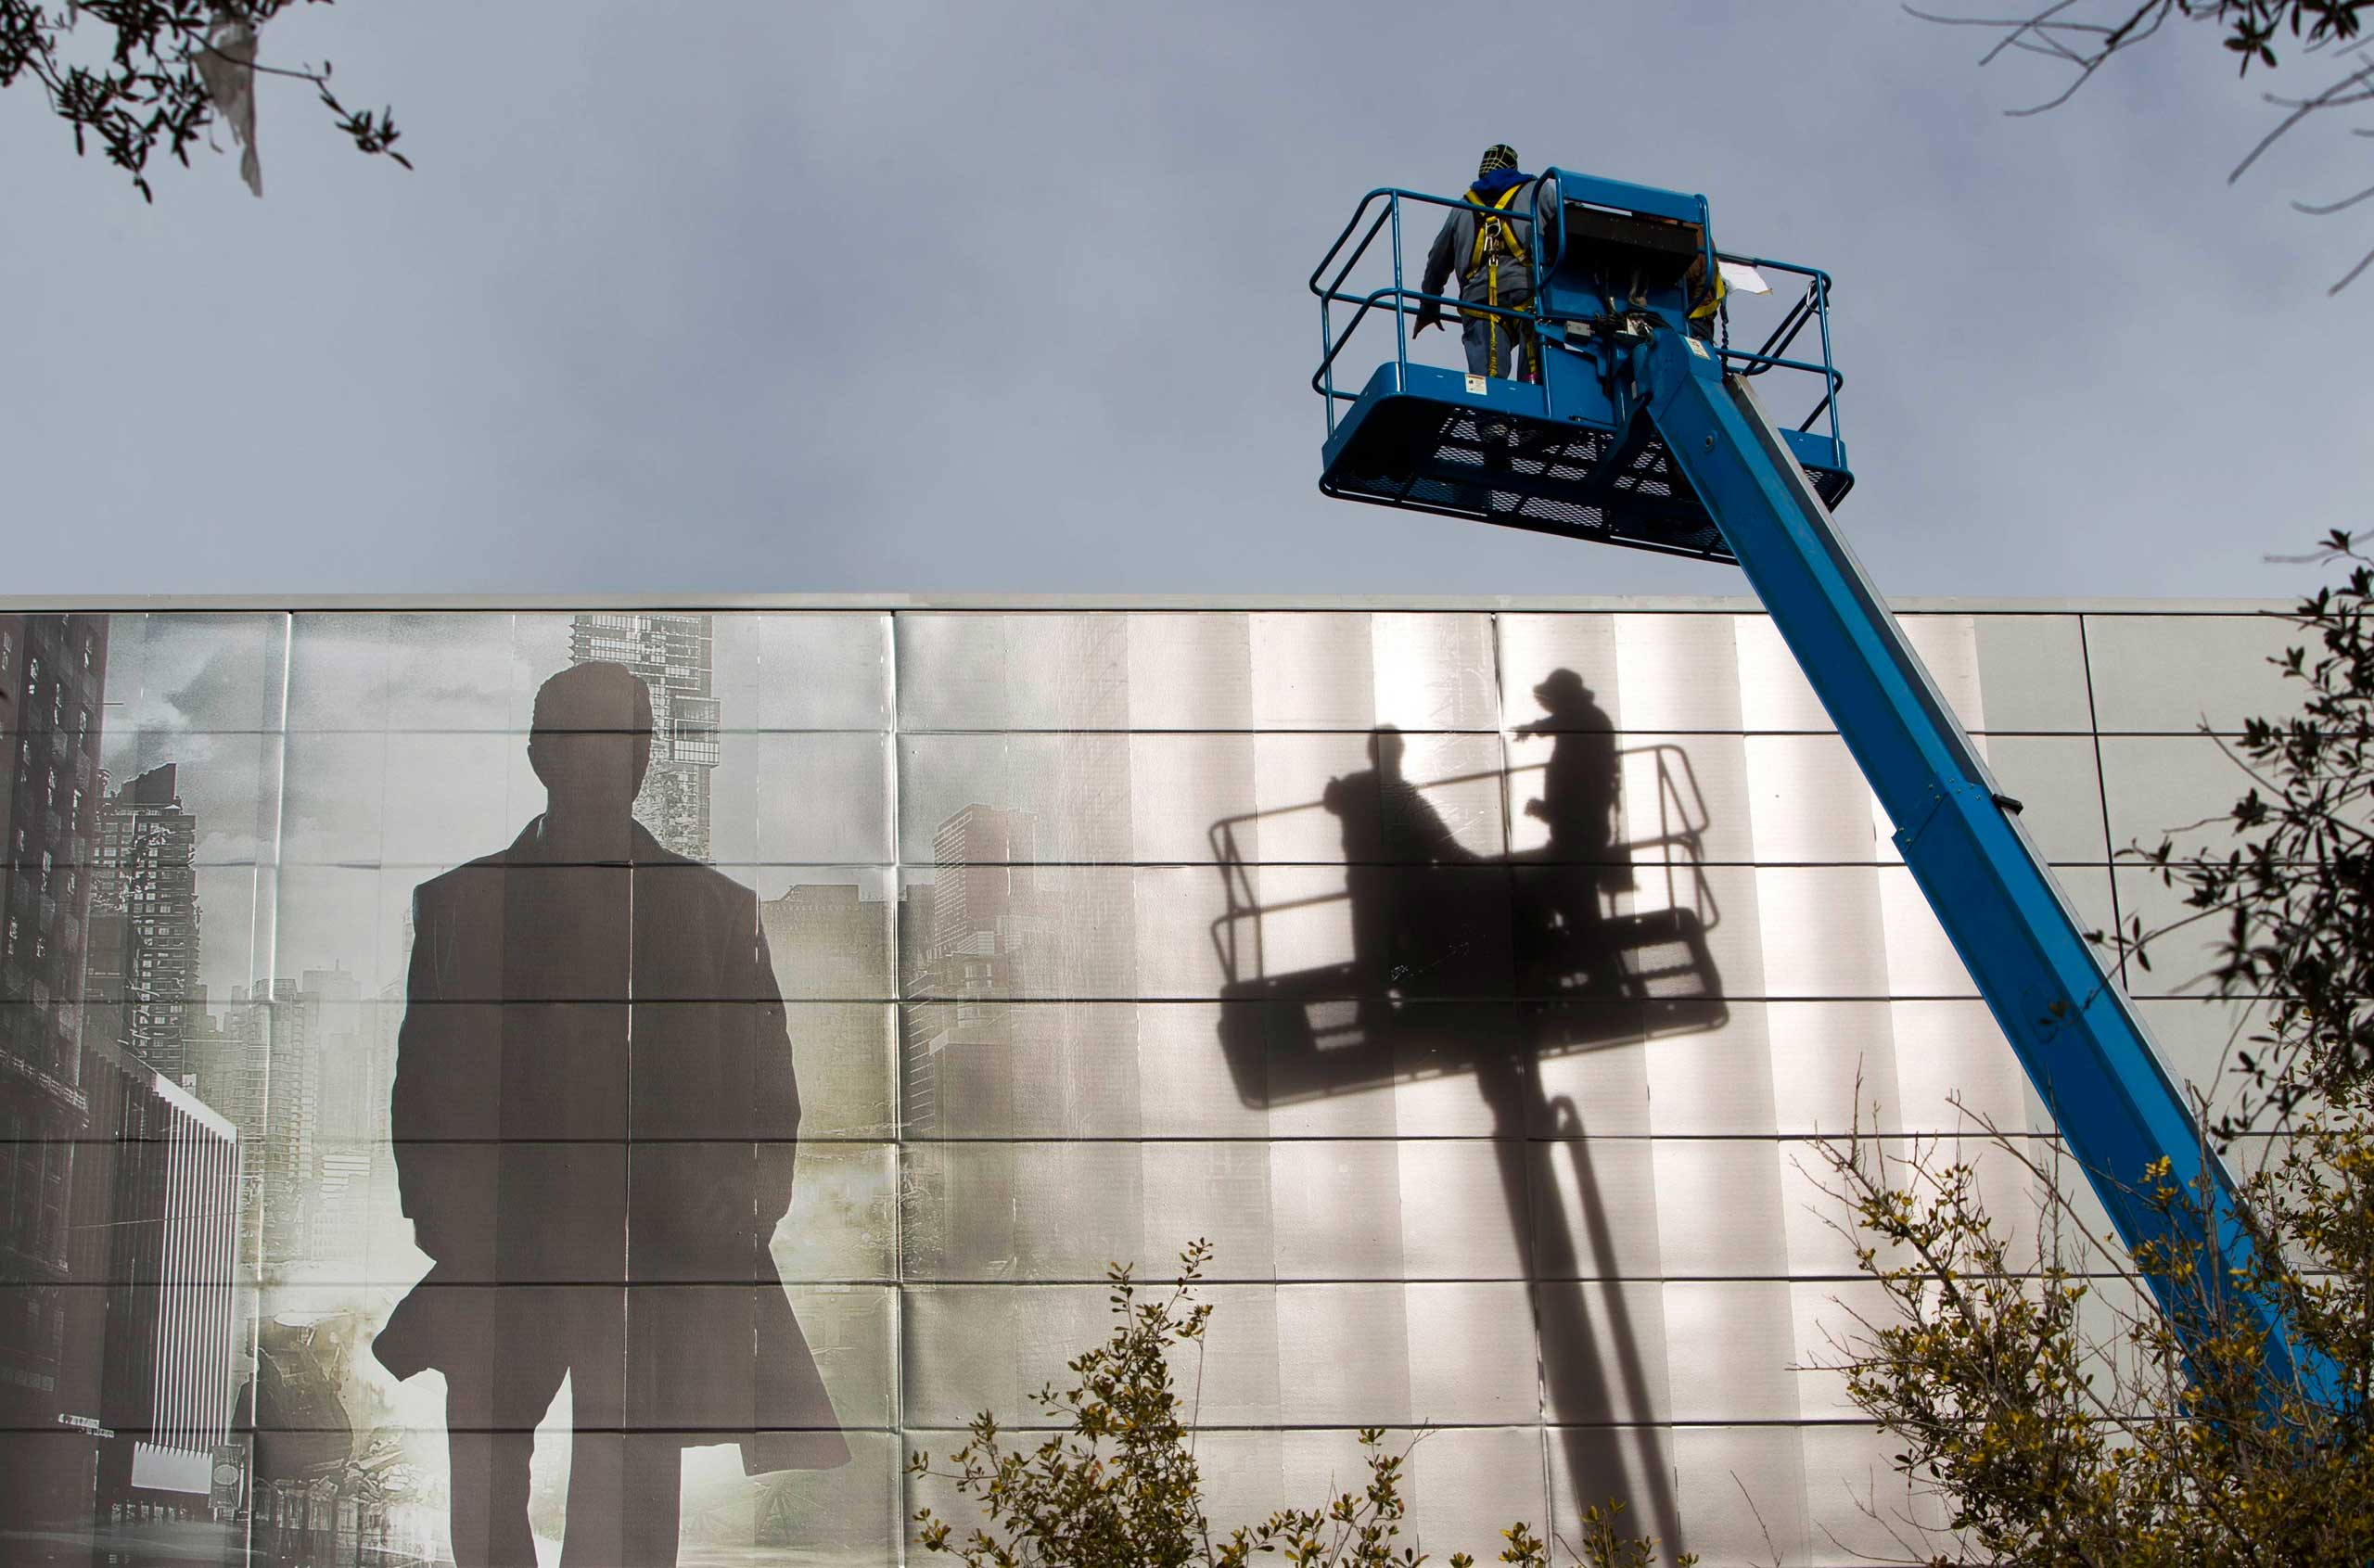 Workers install an advertisement for a new S'UHD TV from Samsung Electronics on the side of the Las Vegas Convention Center on Jan. 4, 2015.